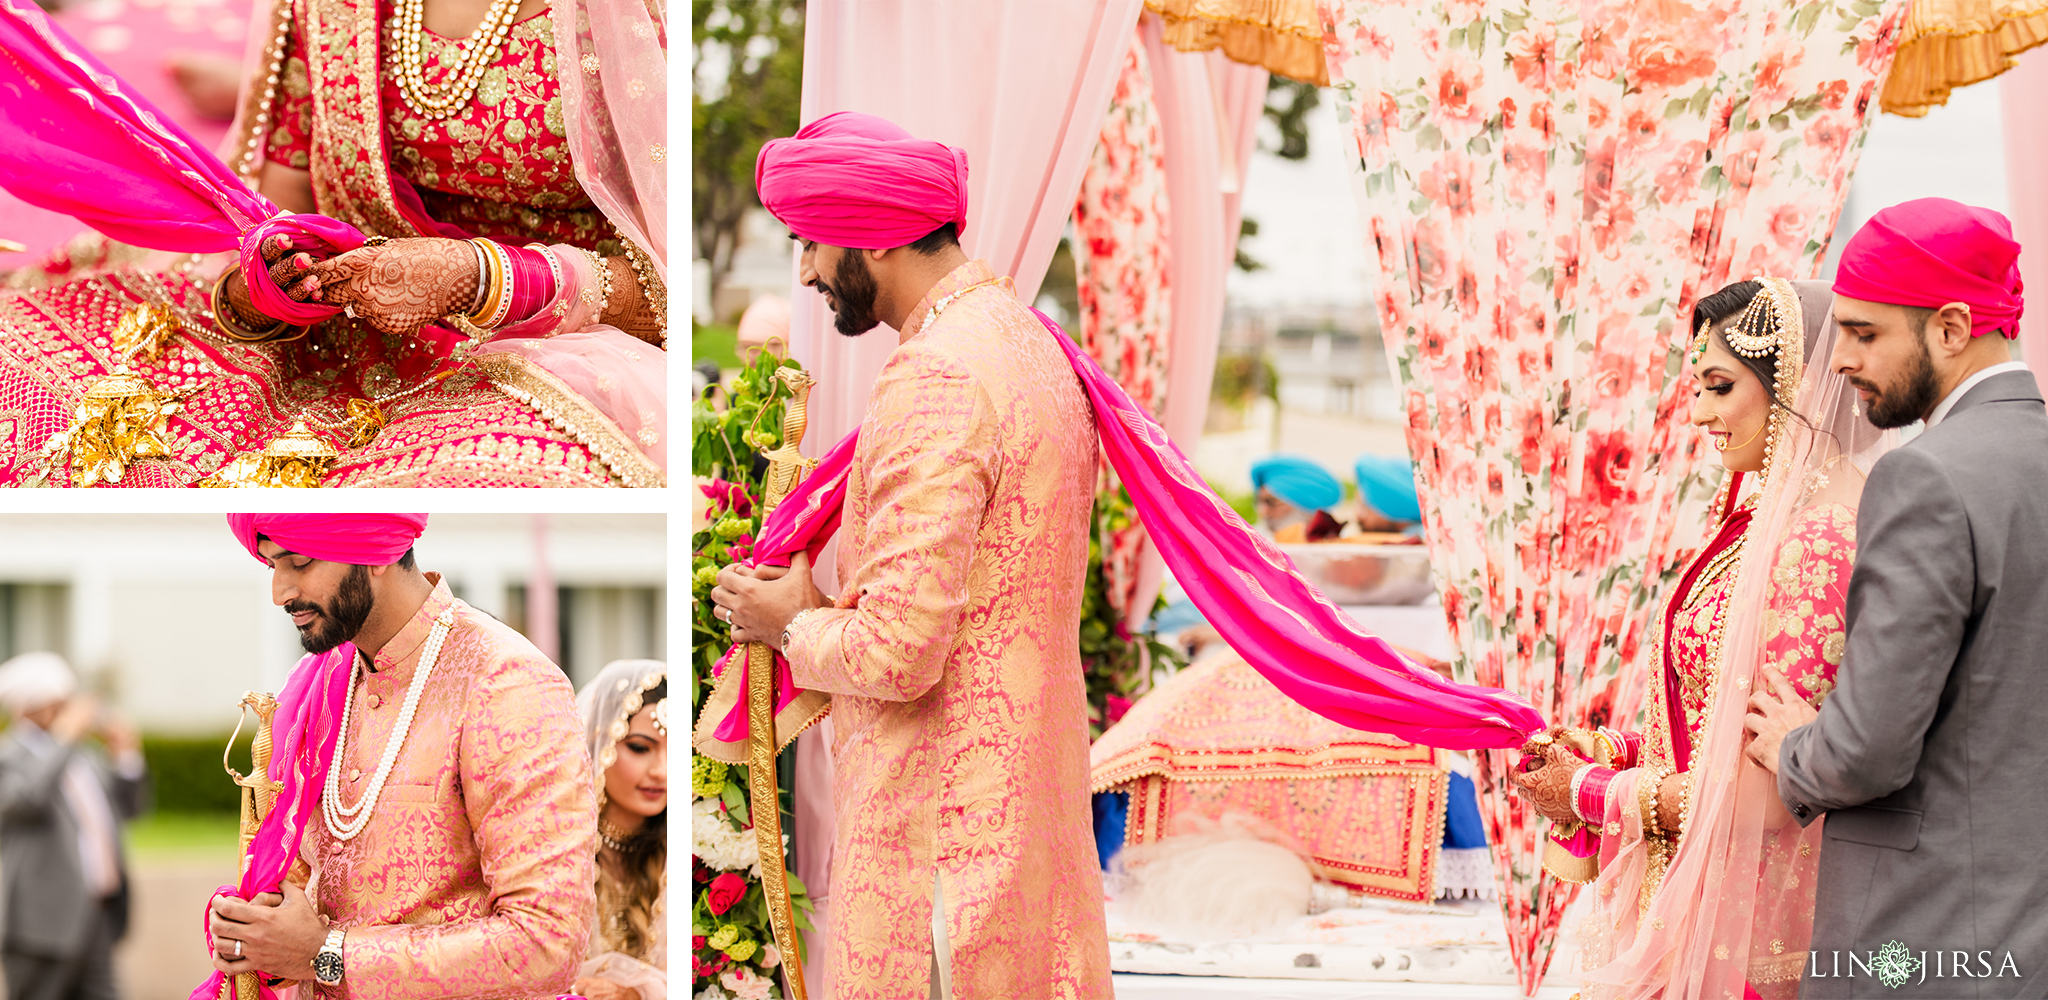 19 Coronado Resort and Spa San Diego Punjabi Wedding Photography